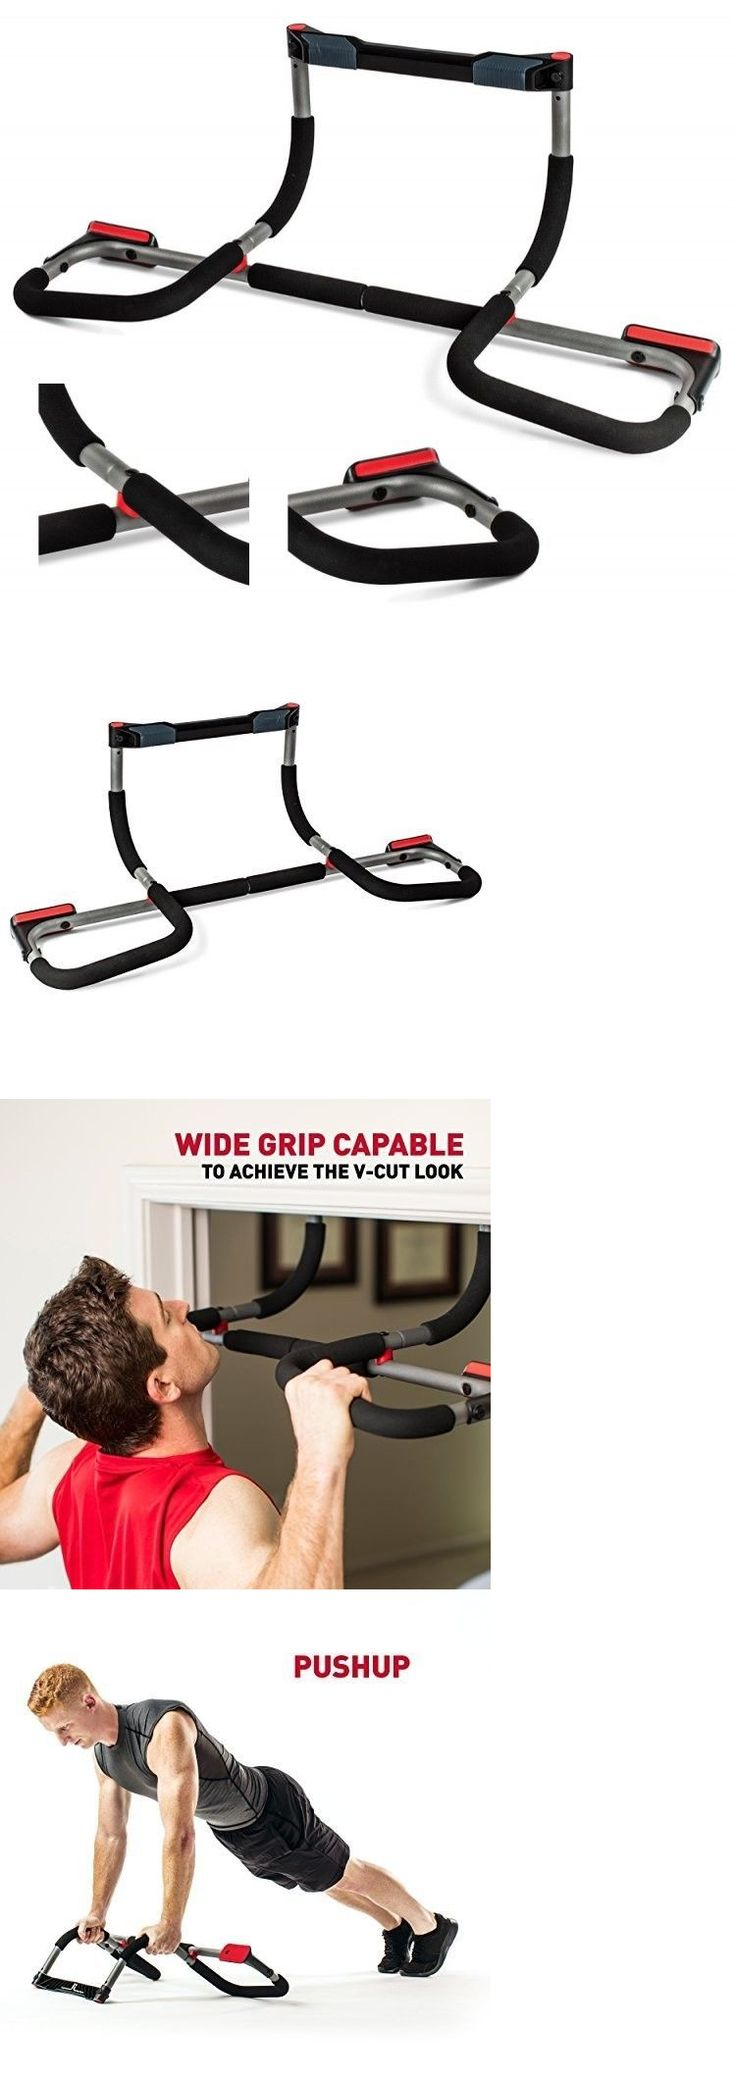 Pull Up Bars 179816: Doorway Pull Up Bar Home Gym Fitness Workout Exercise Door Mounted Equipment New -> BUY IT NOW ONLY: $73.92 on eBay!